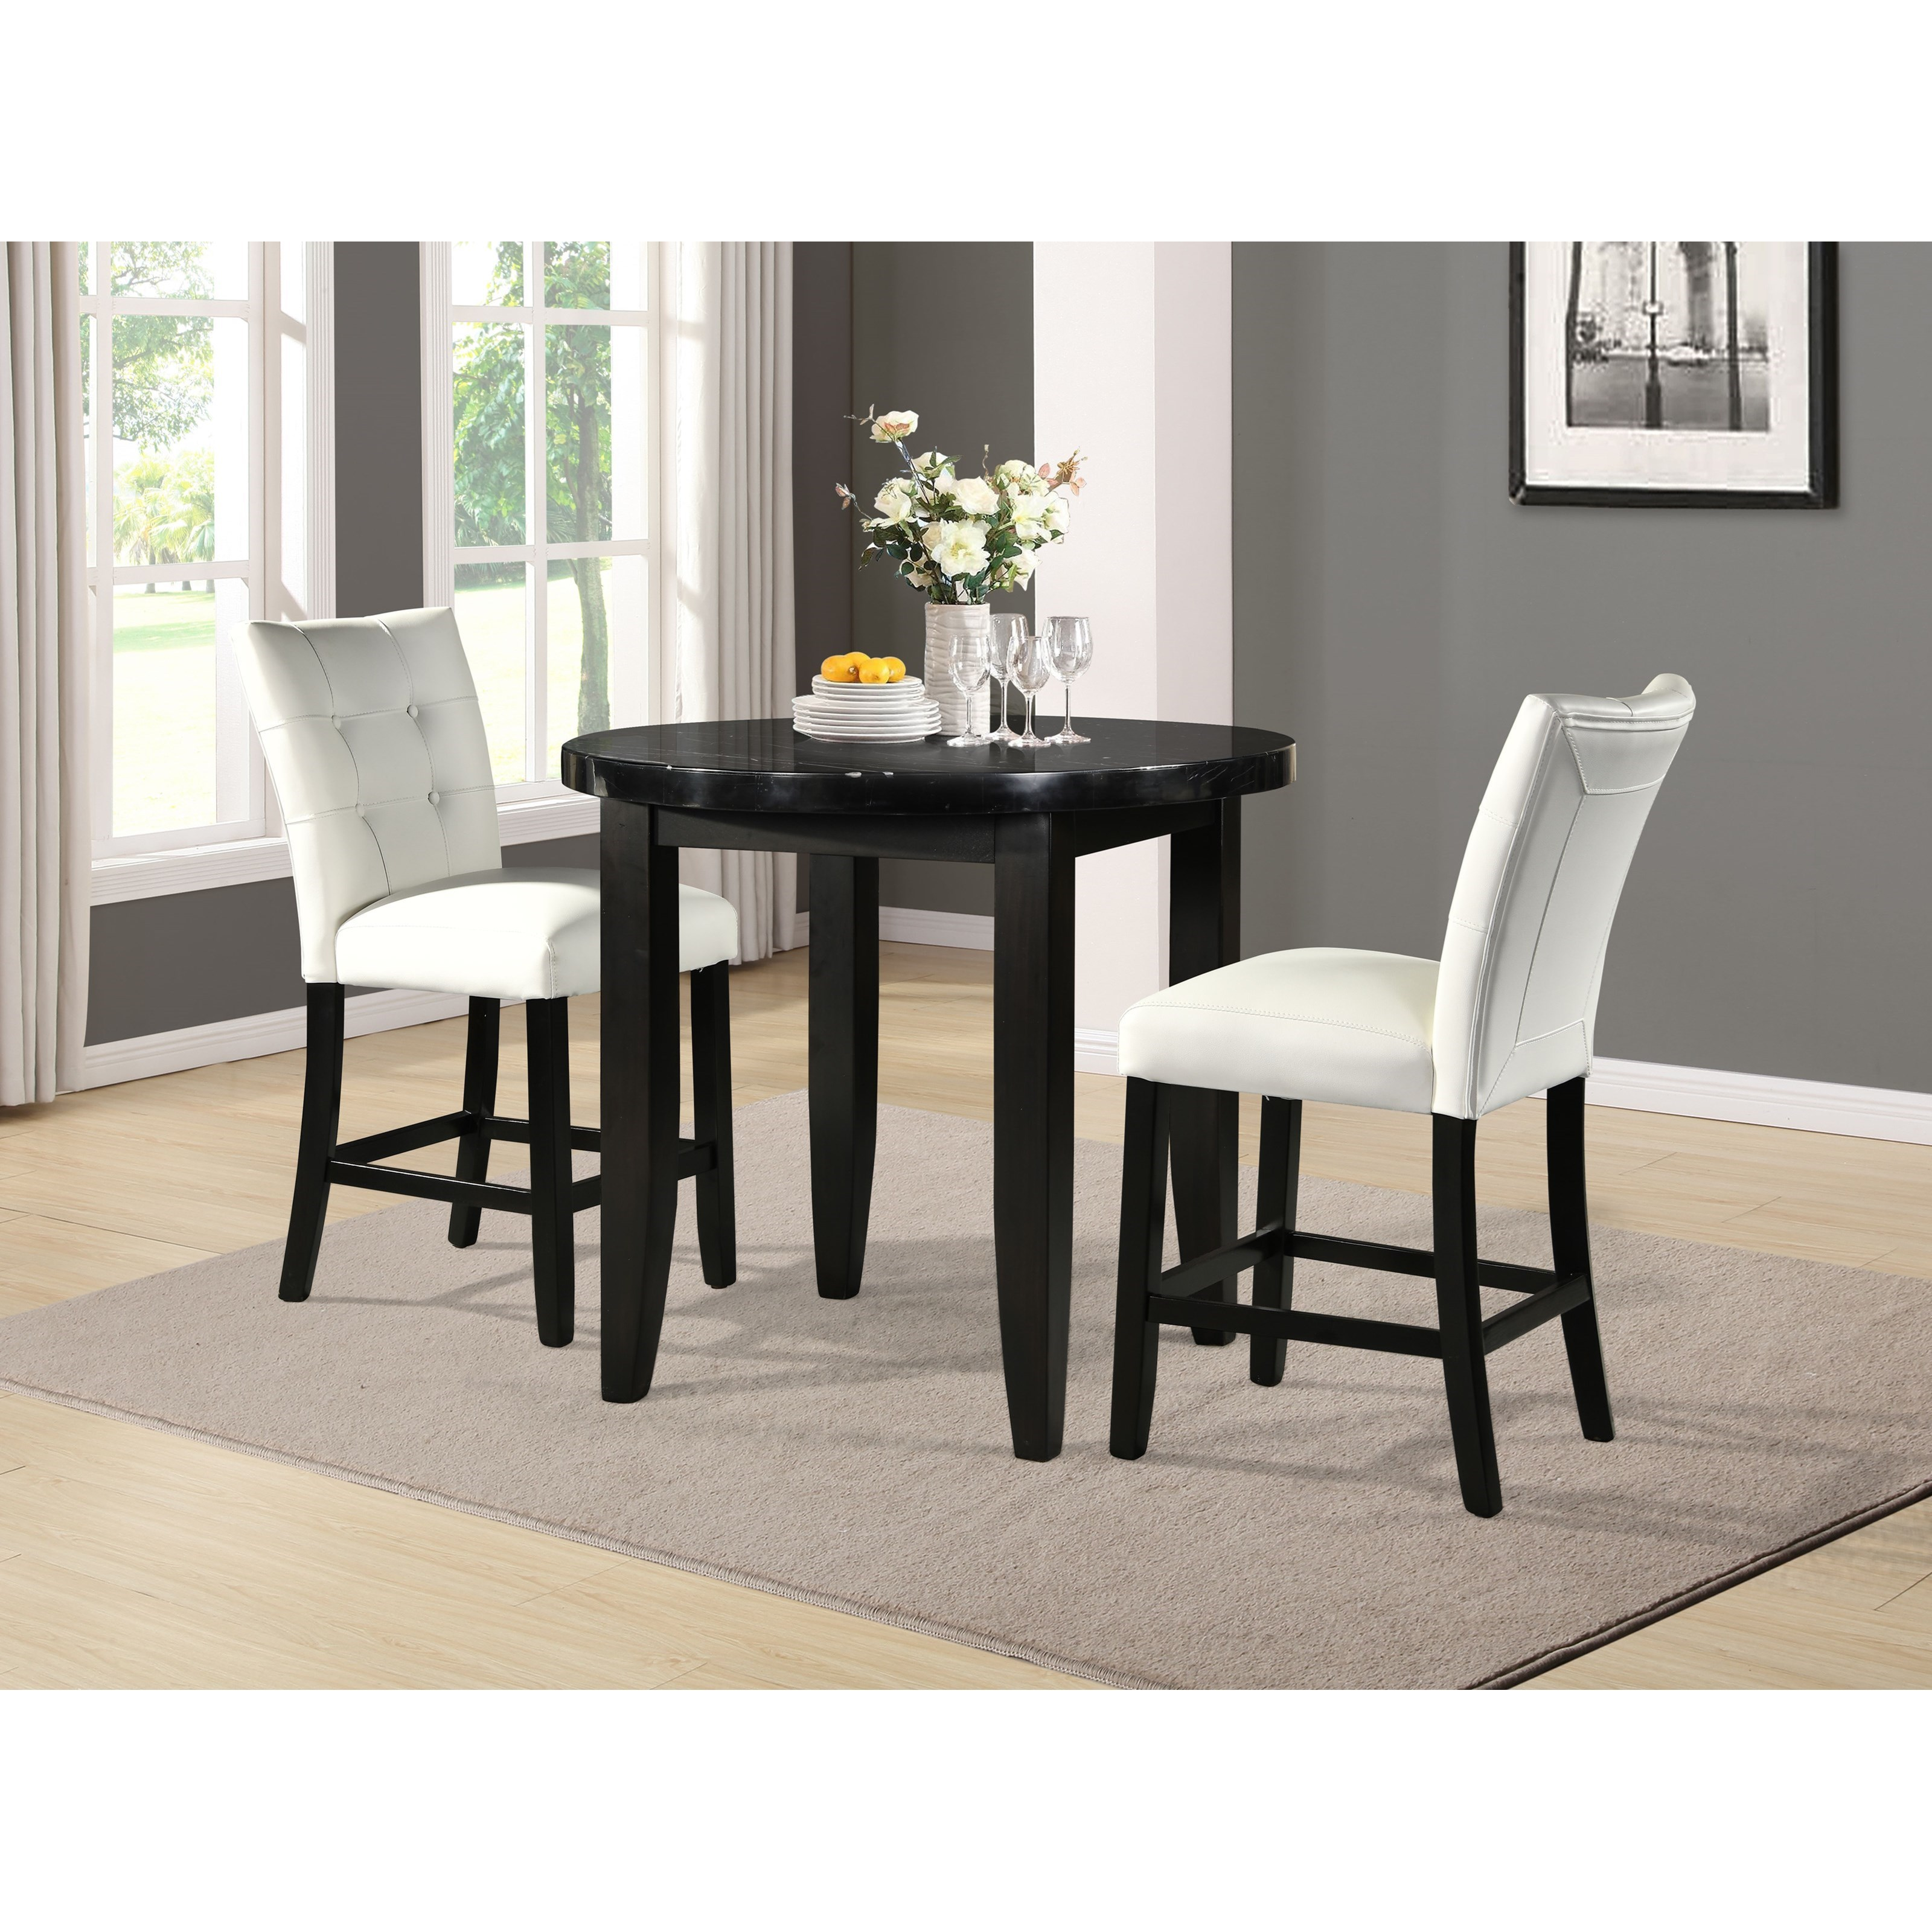 Markina 3-Piece Counter Table and Chair Set by Steve Silver at Standard Furniture